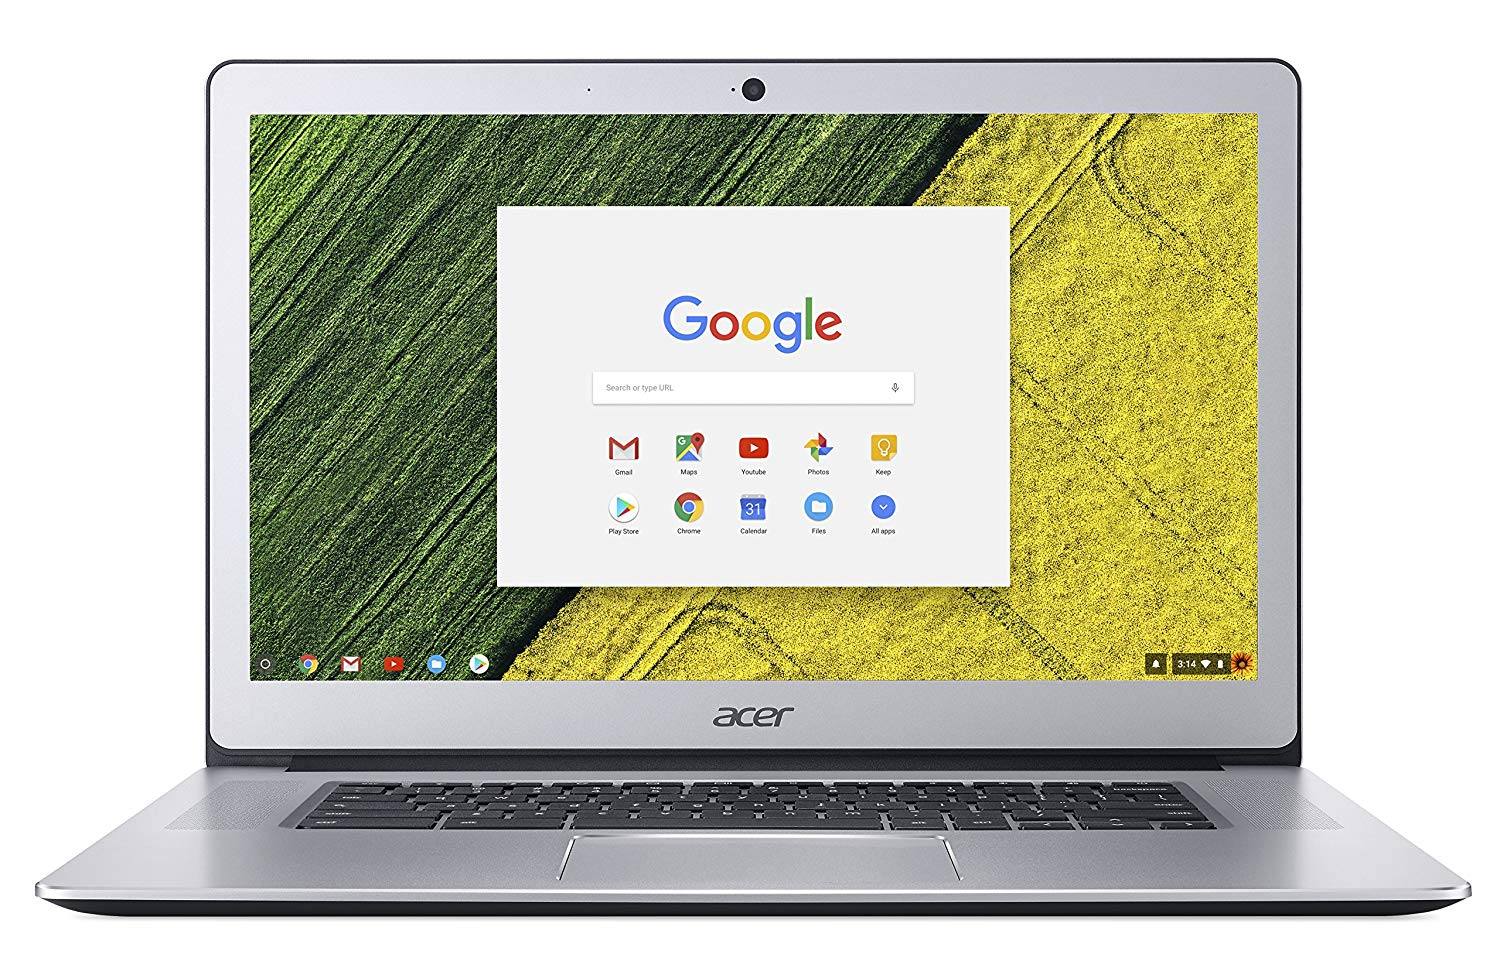 Acer Chromebook 15 CB515 1HT 15.6 inch Touchscreen Notebook